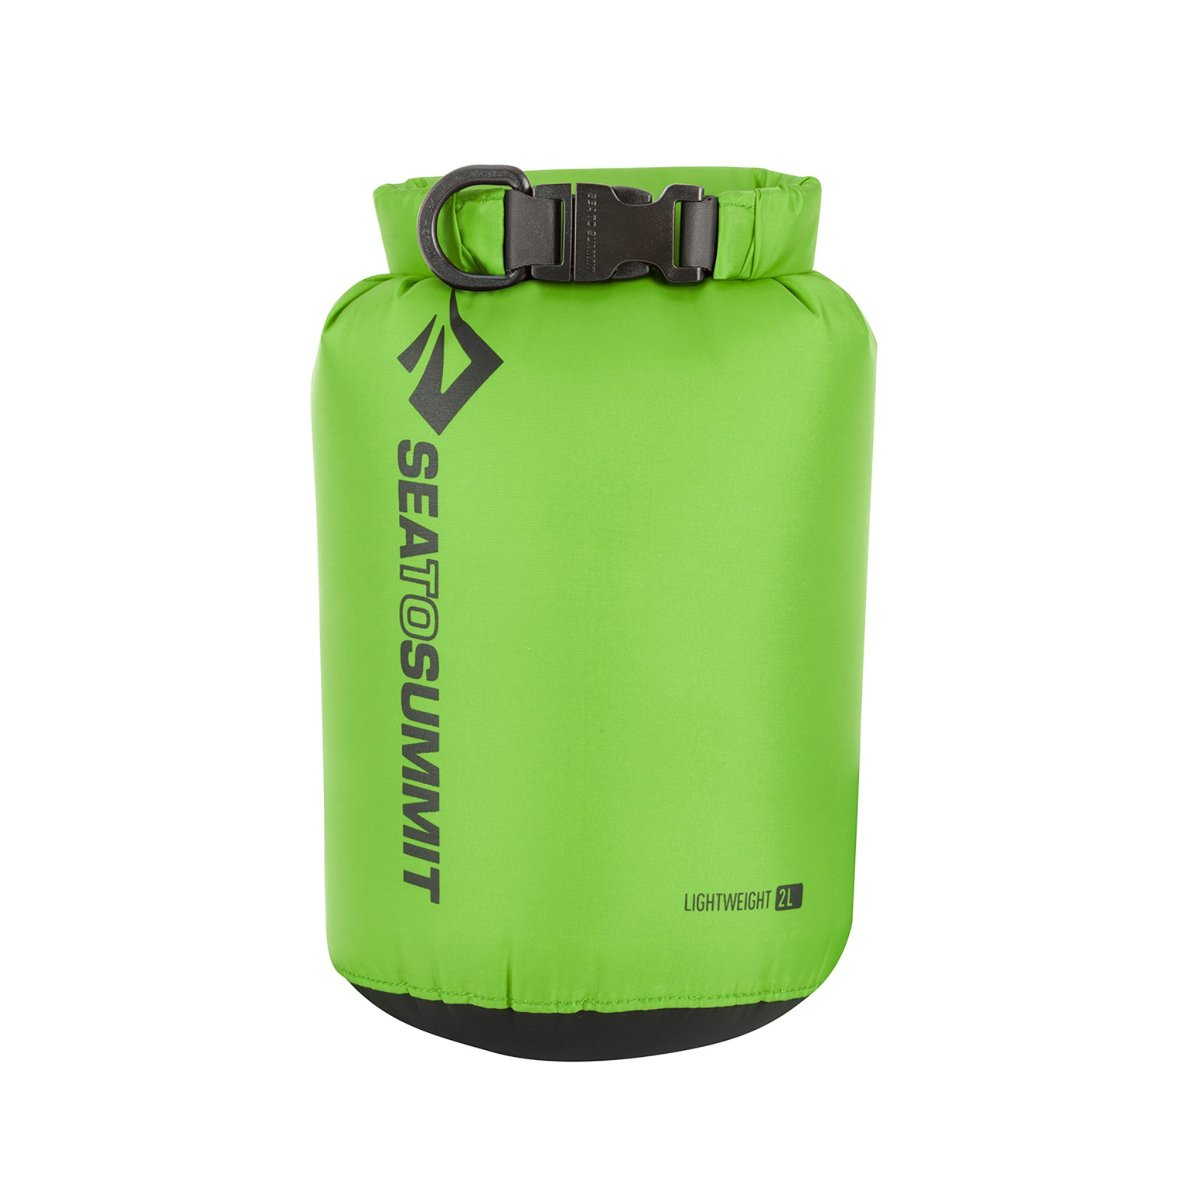 Гермочехол Sea to summit Lightweight Dry Sack Apple Green, 2 L STS ADS2GN